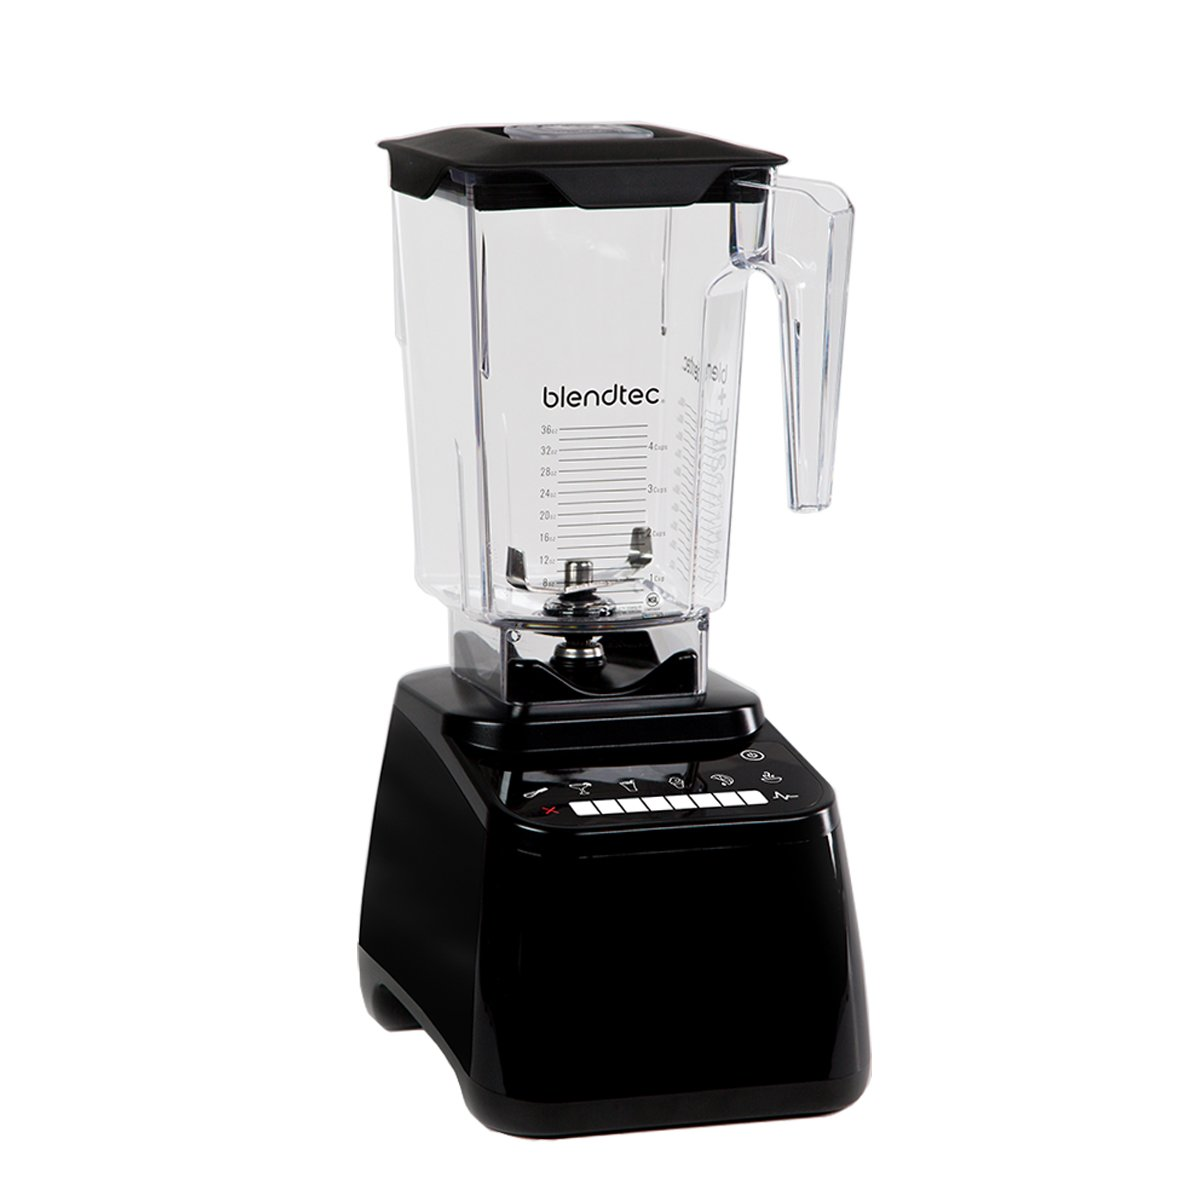 Blendtec – designer series 8-speed blender in black